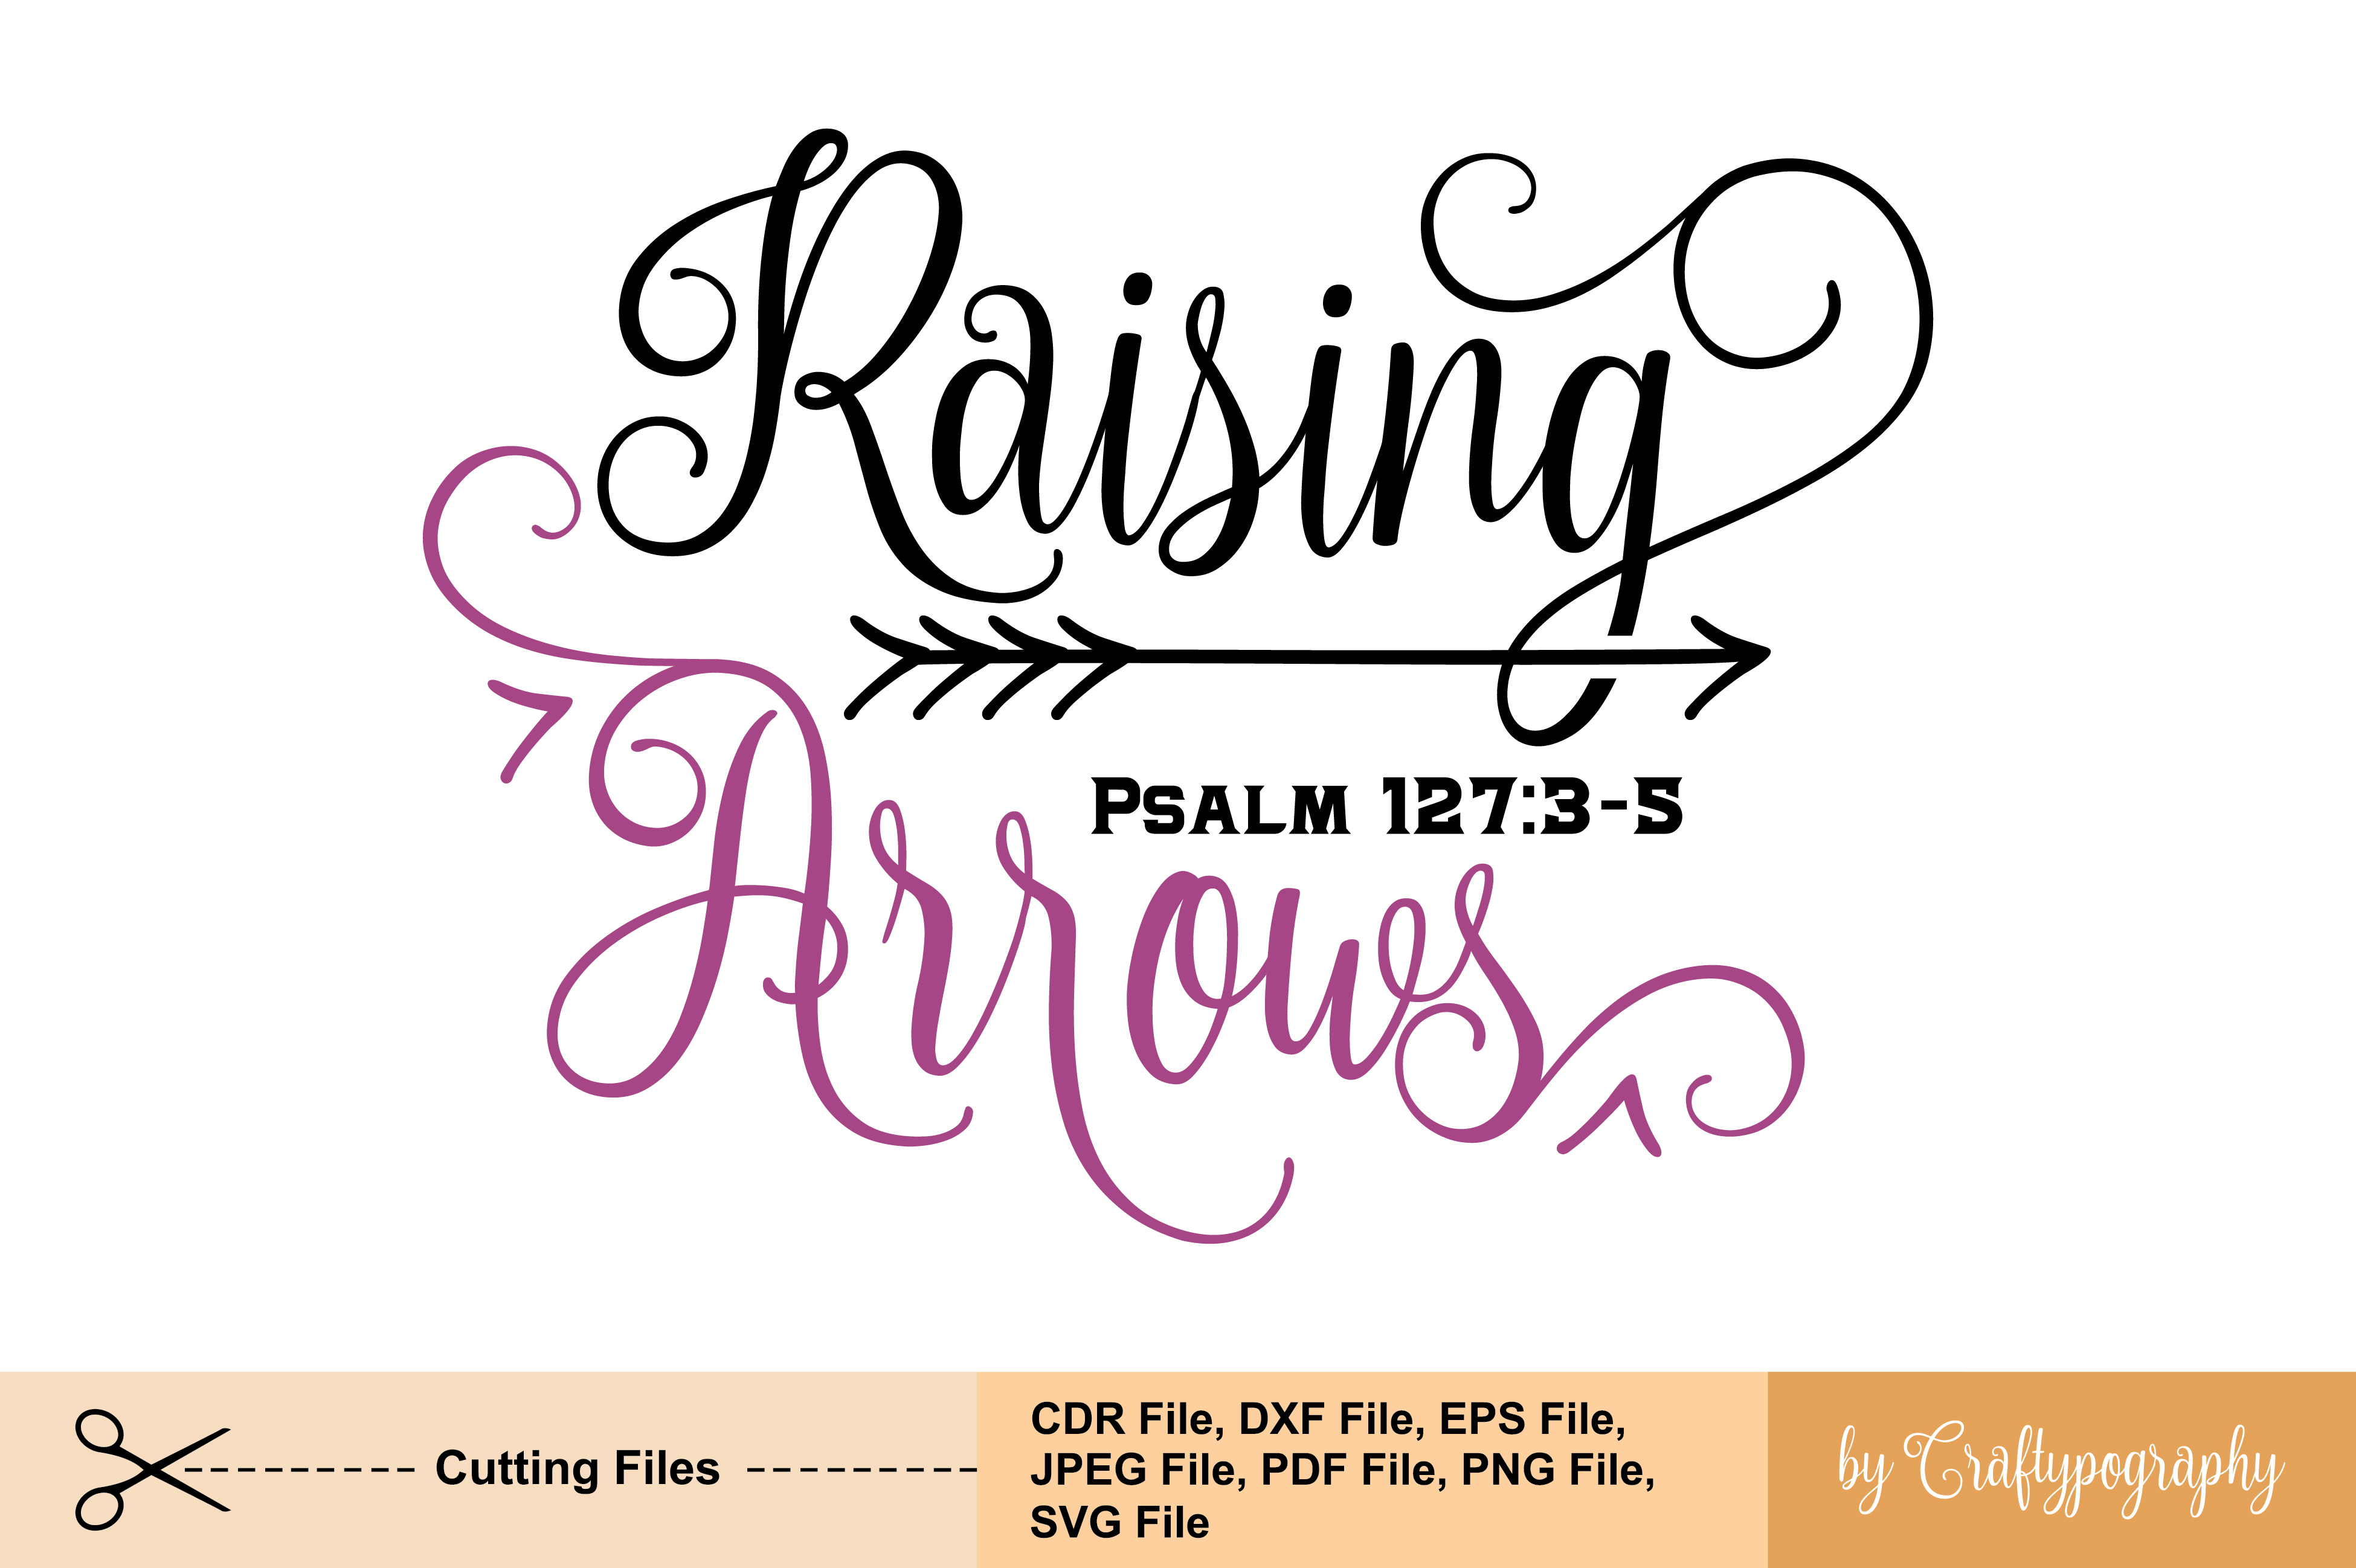 Raising Arrows Psalm 127 3 5 Graphic By Craftypography